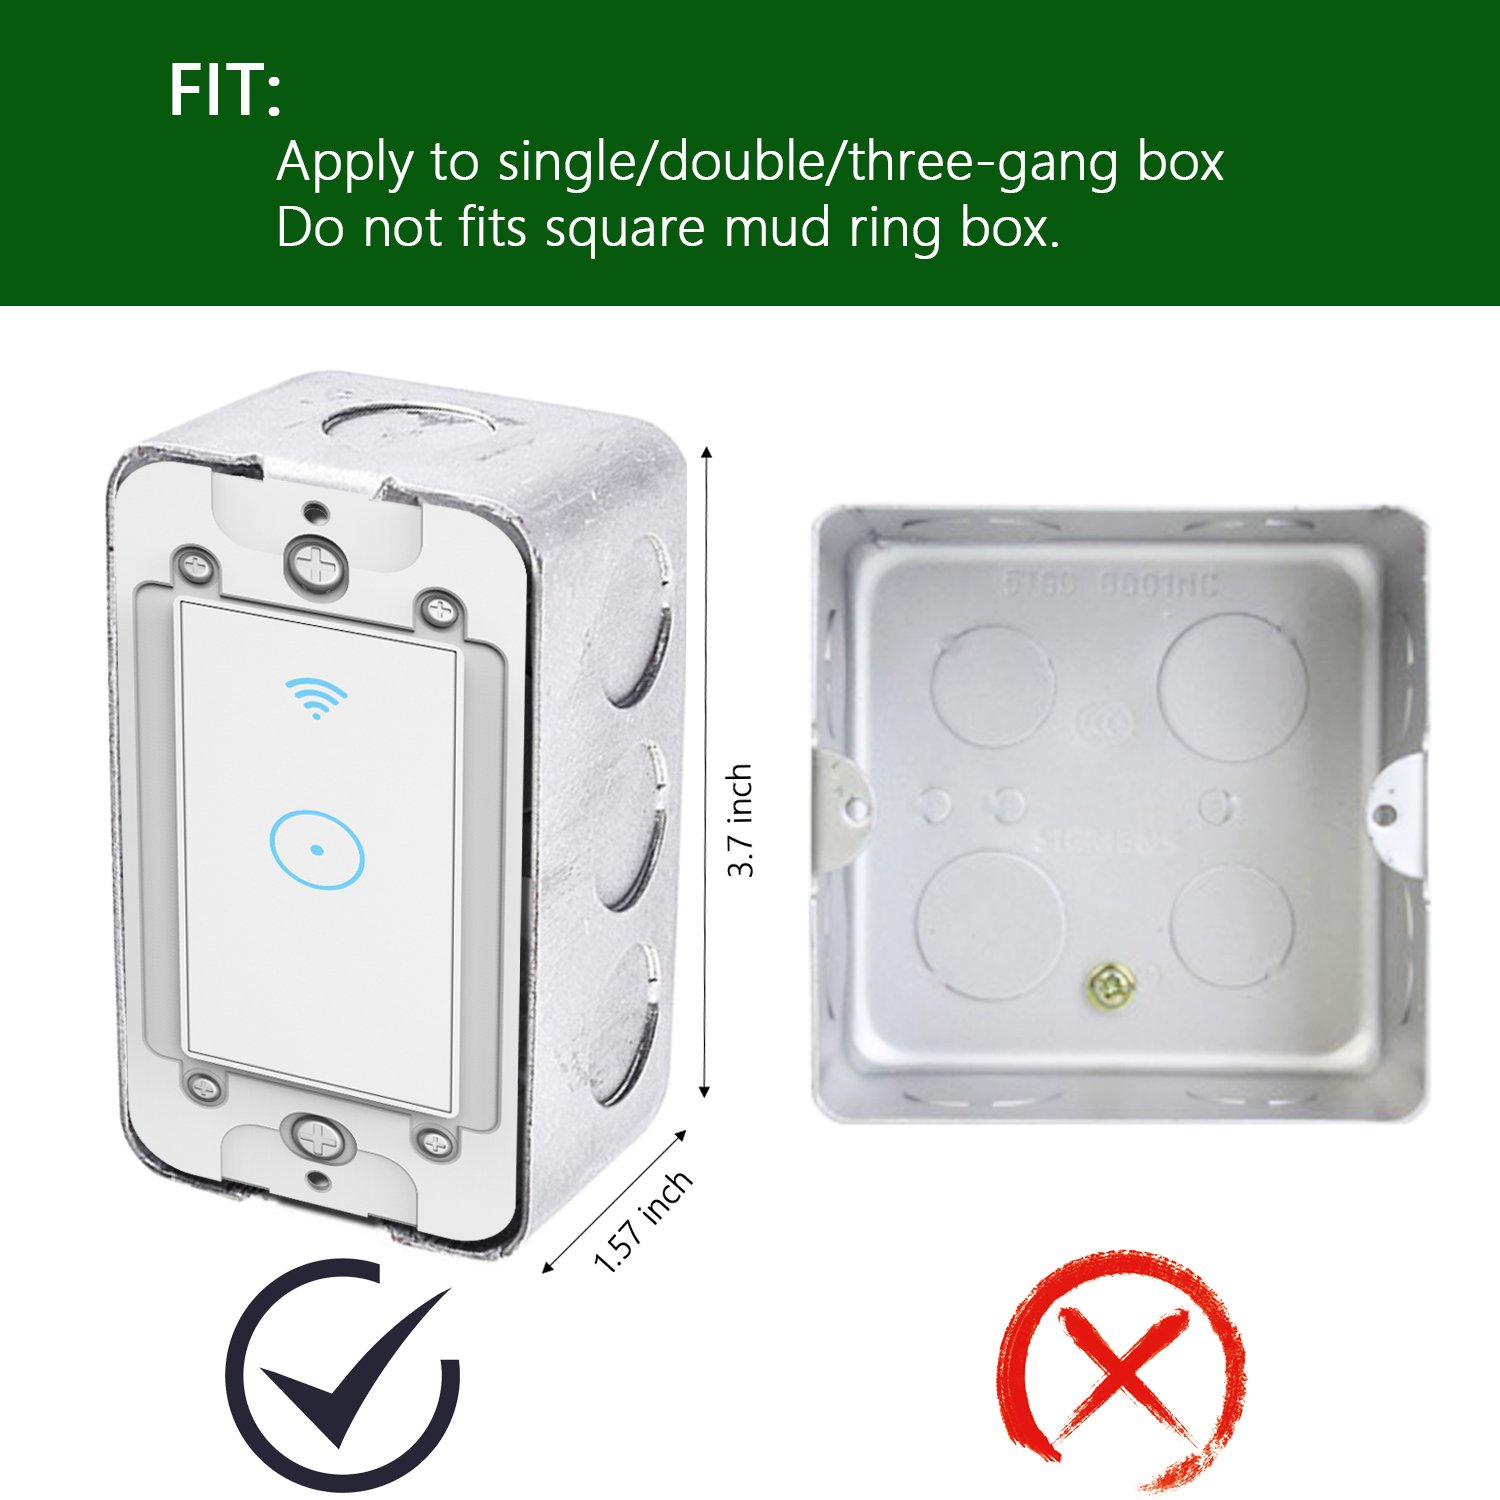 Smart Light Switch Wi Fi In Wall Wireless Compatible Wiring Diagram 3 Gang Box With Amazon Alexa Remote Control Your Fixtures From Anywhere Timing Function